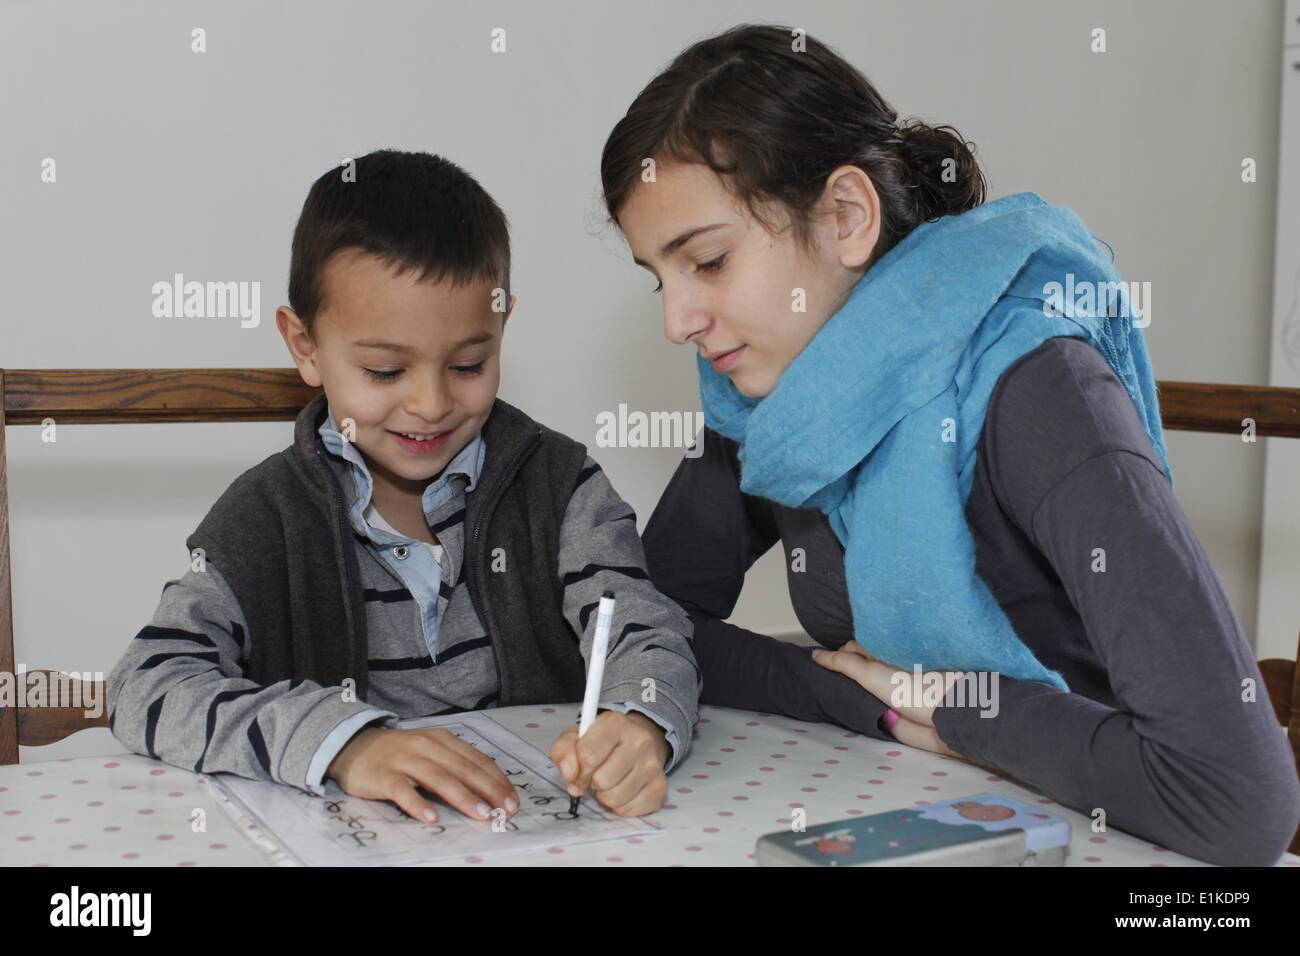 6-year-old boy writing with his sister - Stock Image